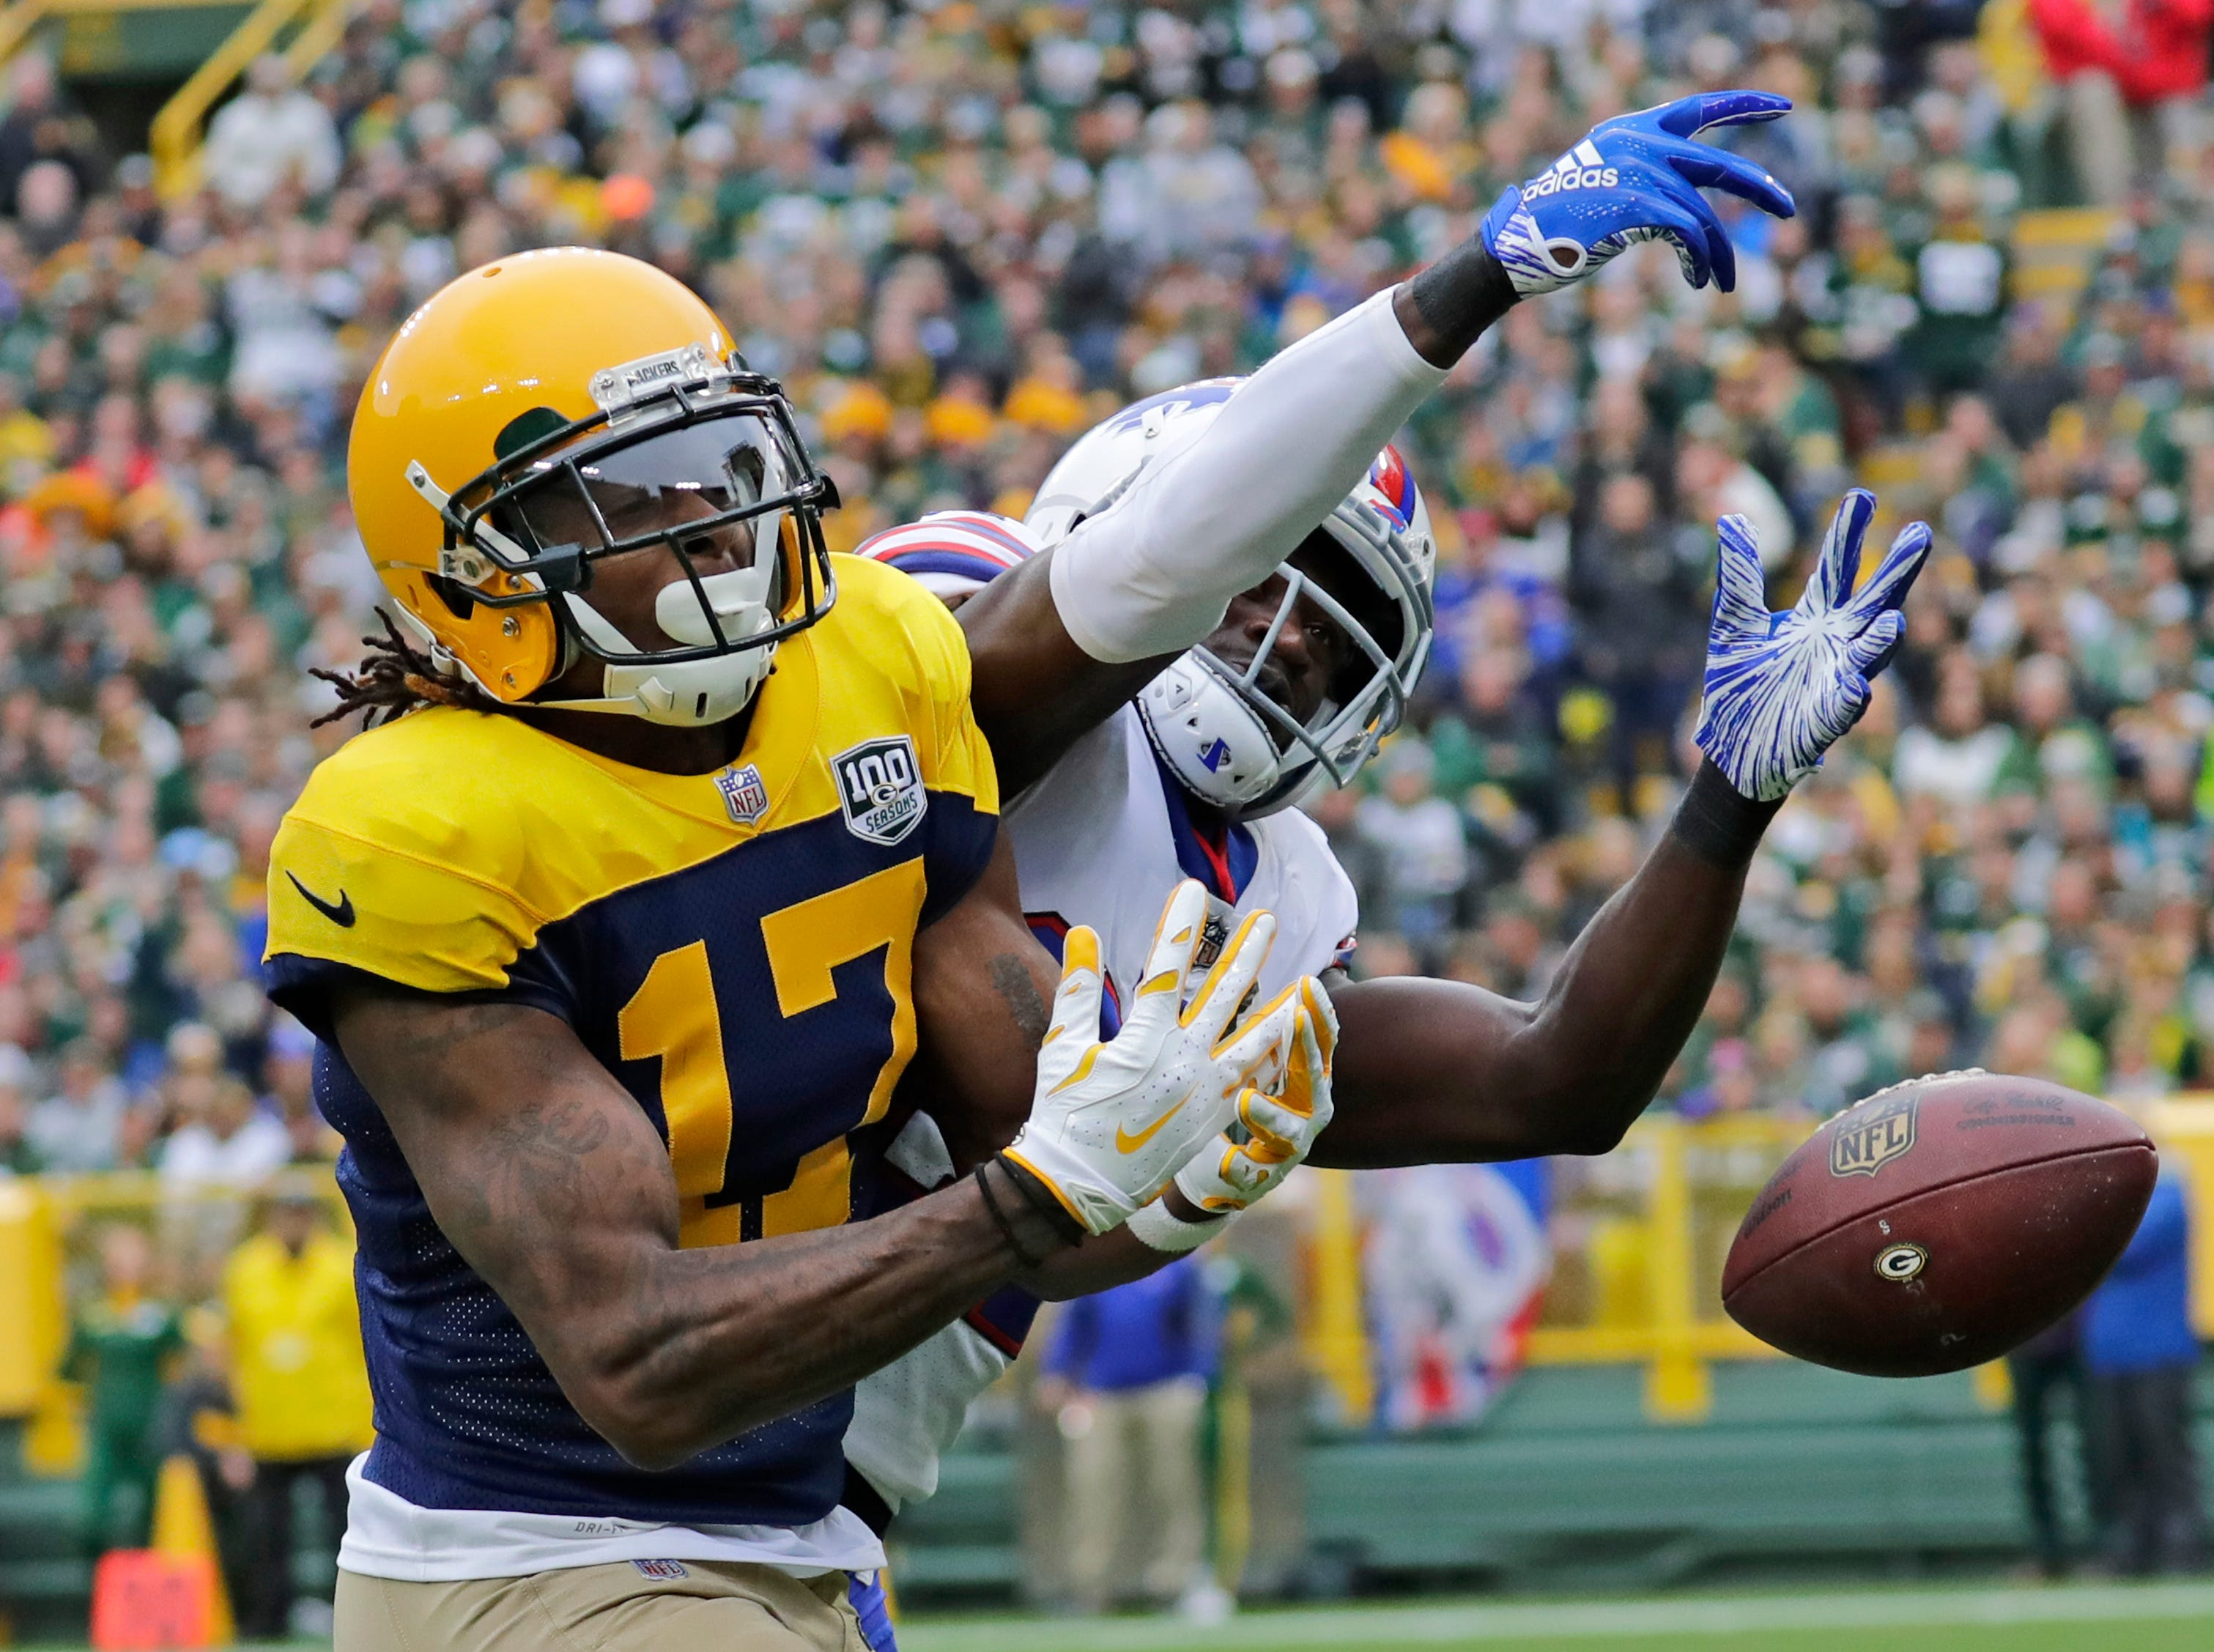 Green Bay Packers wide receiver Davante Adams (17) drops a pass in the end zone against Buffalo Bills cornerback Tre'Davious White (27) in the first half during their football game Sunday, Sept. 30, 2018, at Lambeau Field in Green Bay, Wis. 